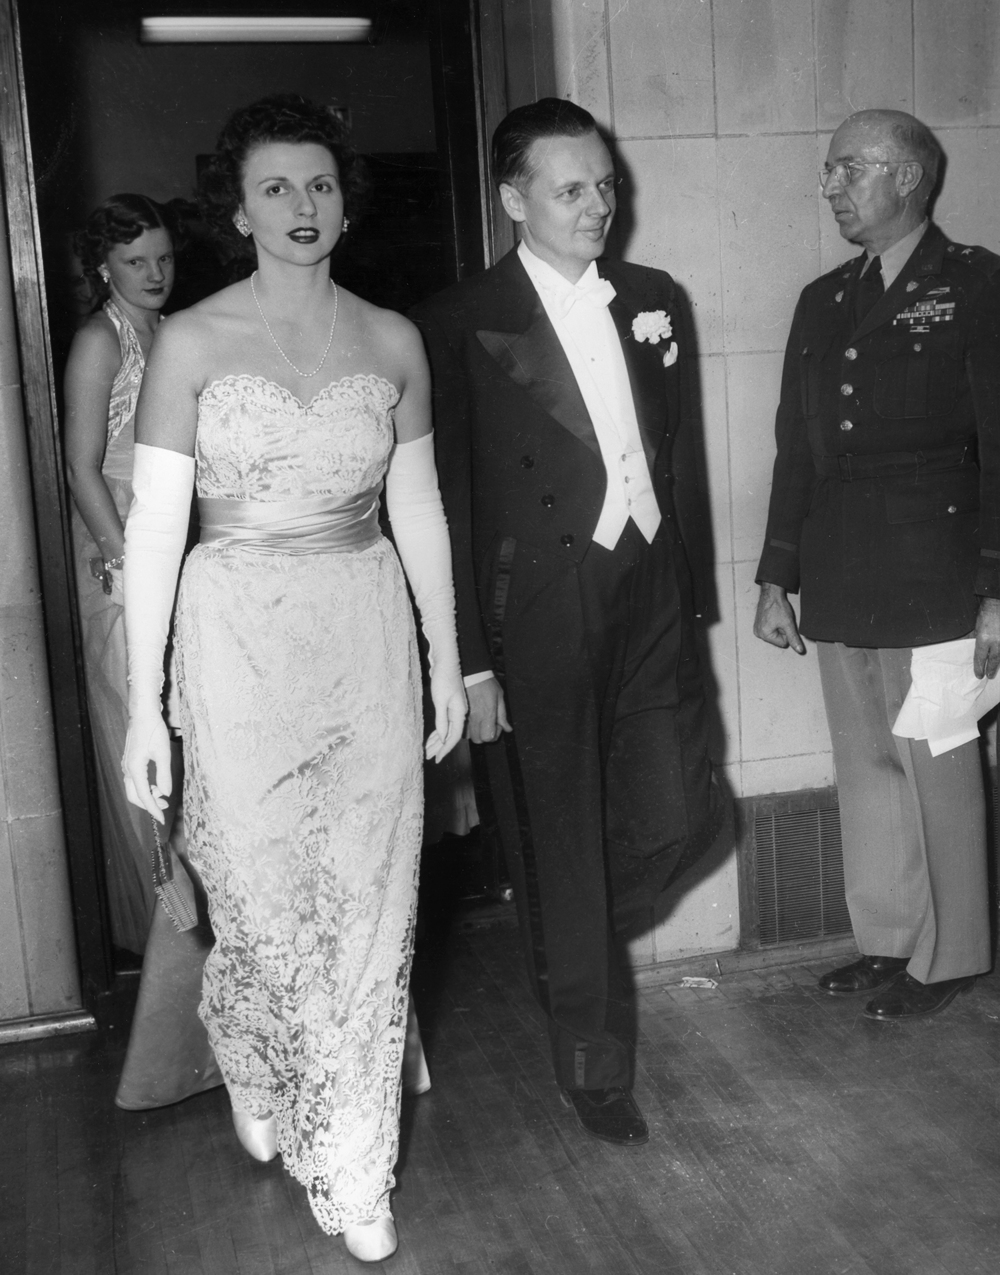 Gov. William Stratton and wife Shirley at inaugural ball, Jan. 12, 1953 at the Illinois State Armory. File/The State Journal-Register